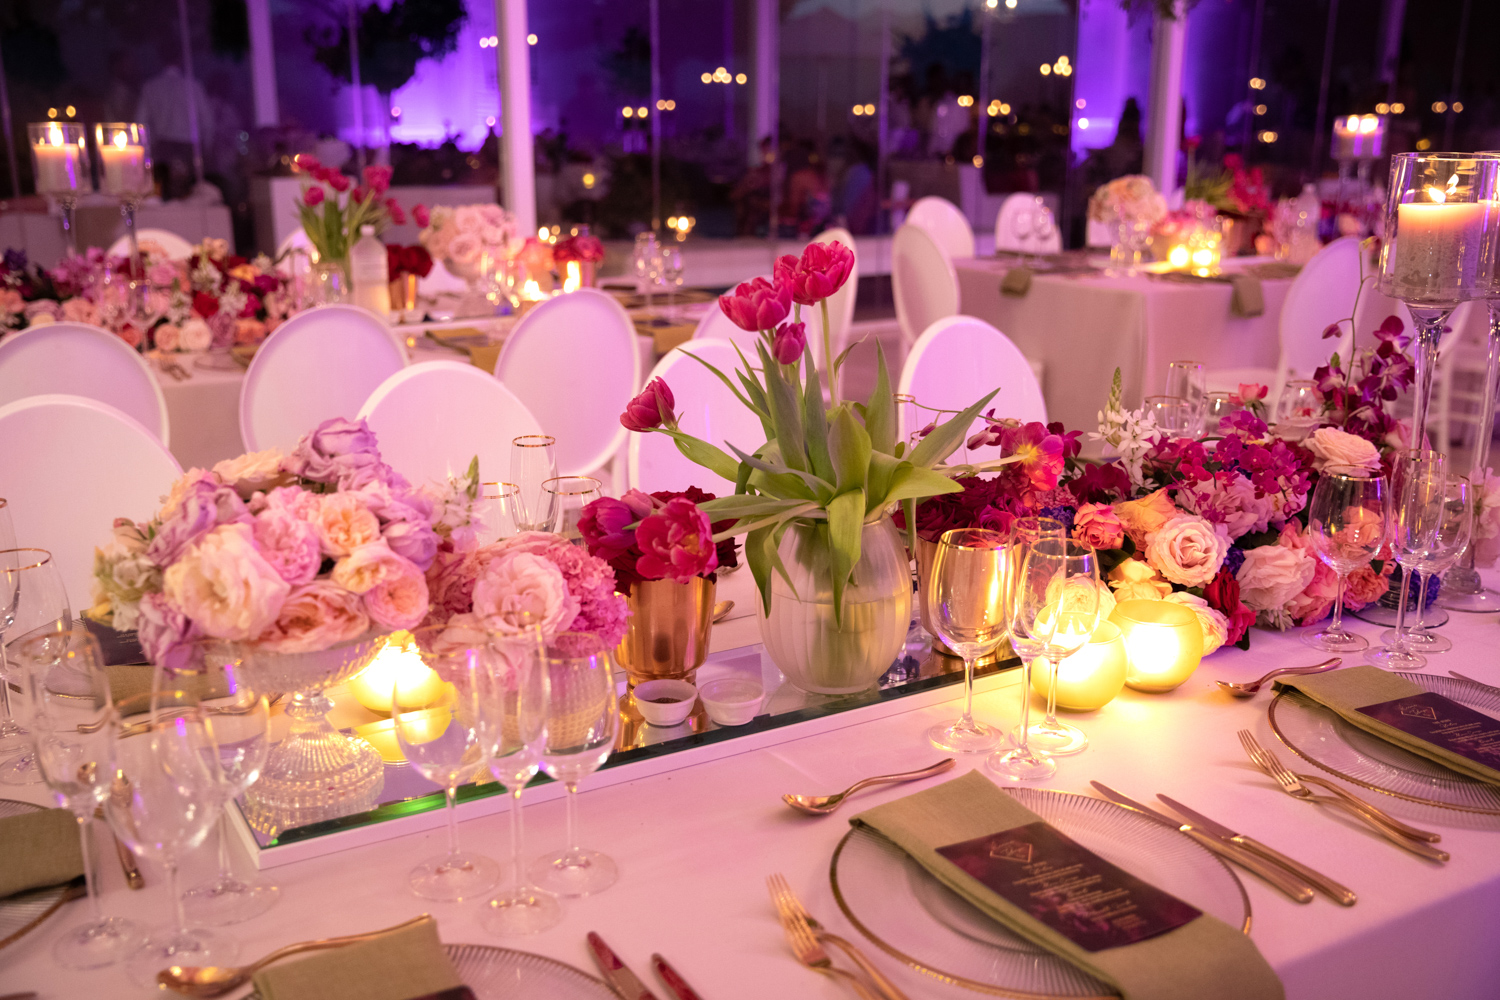 a decor shot in Laurent venue of pink floral arraignments on a mirror with gold cutlery and a golden rim under plate and white chairs.